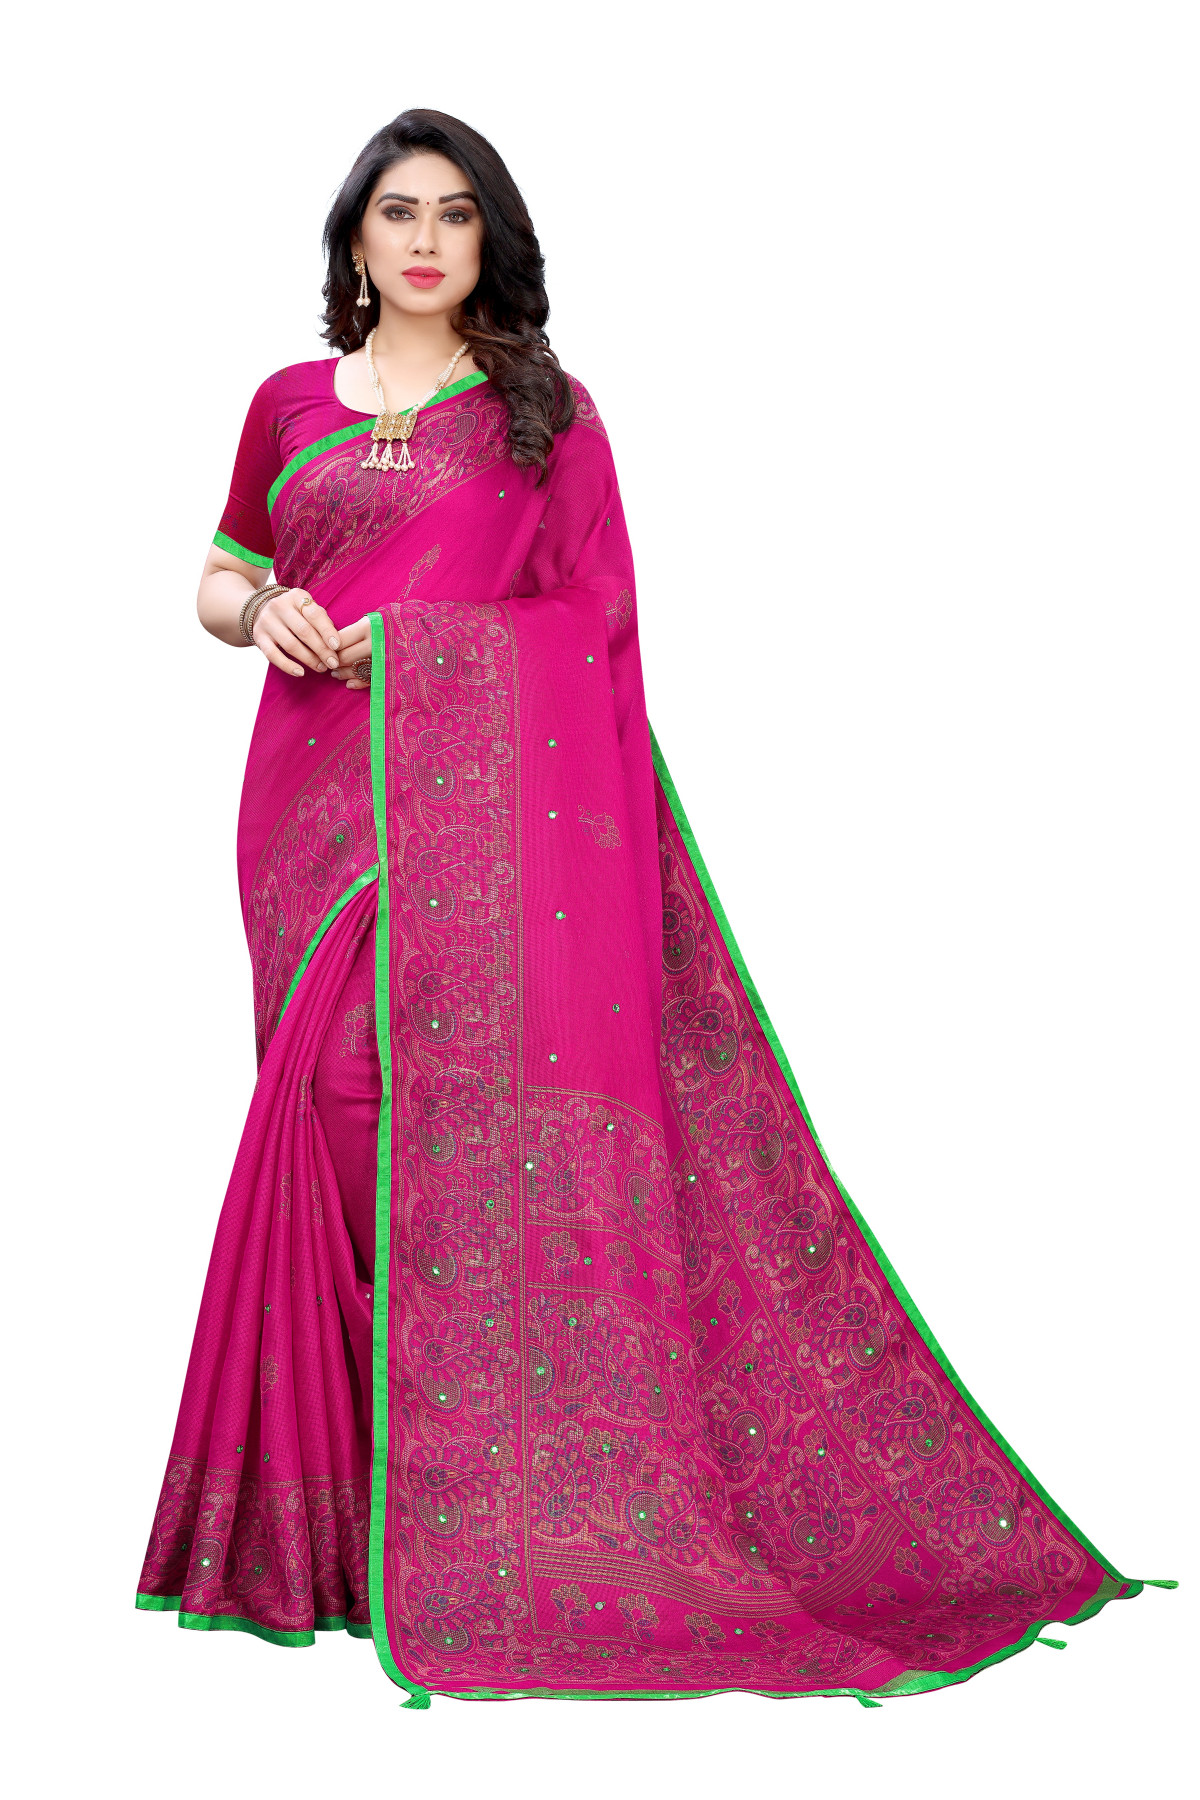 Linen Sarees - Buy Designer Pink Printed Linen Sarees For Womens Online in India | Ethnicbazaar